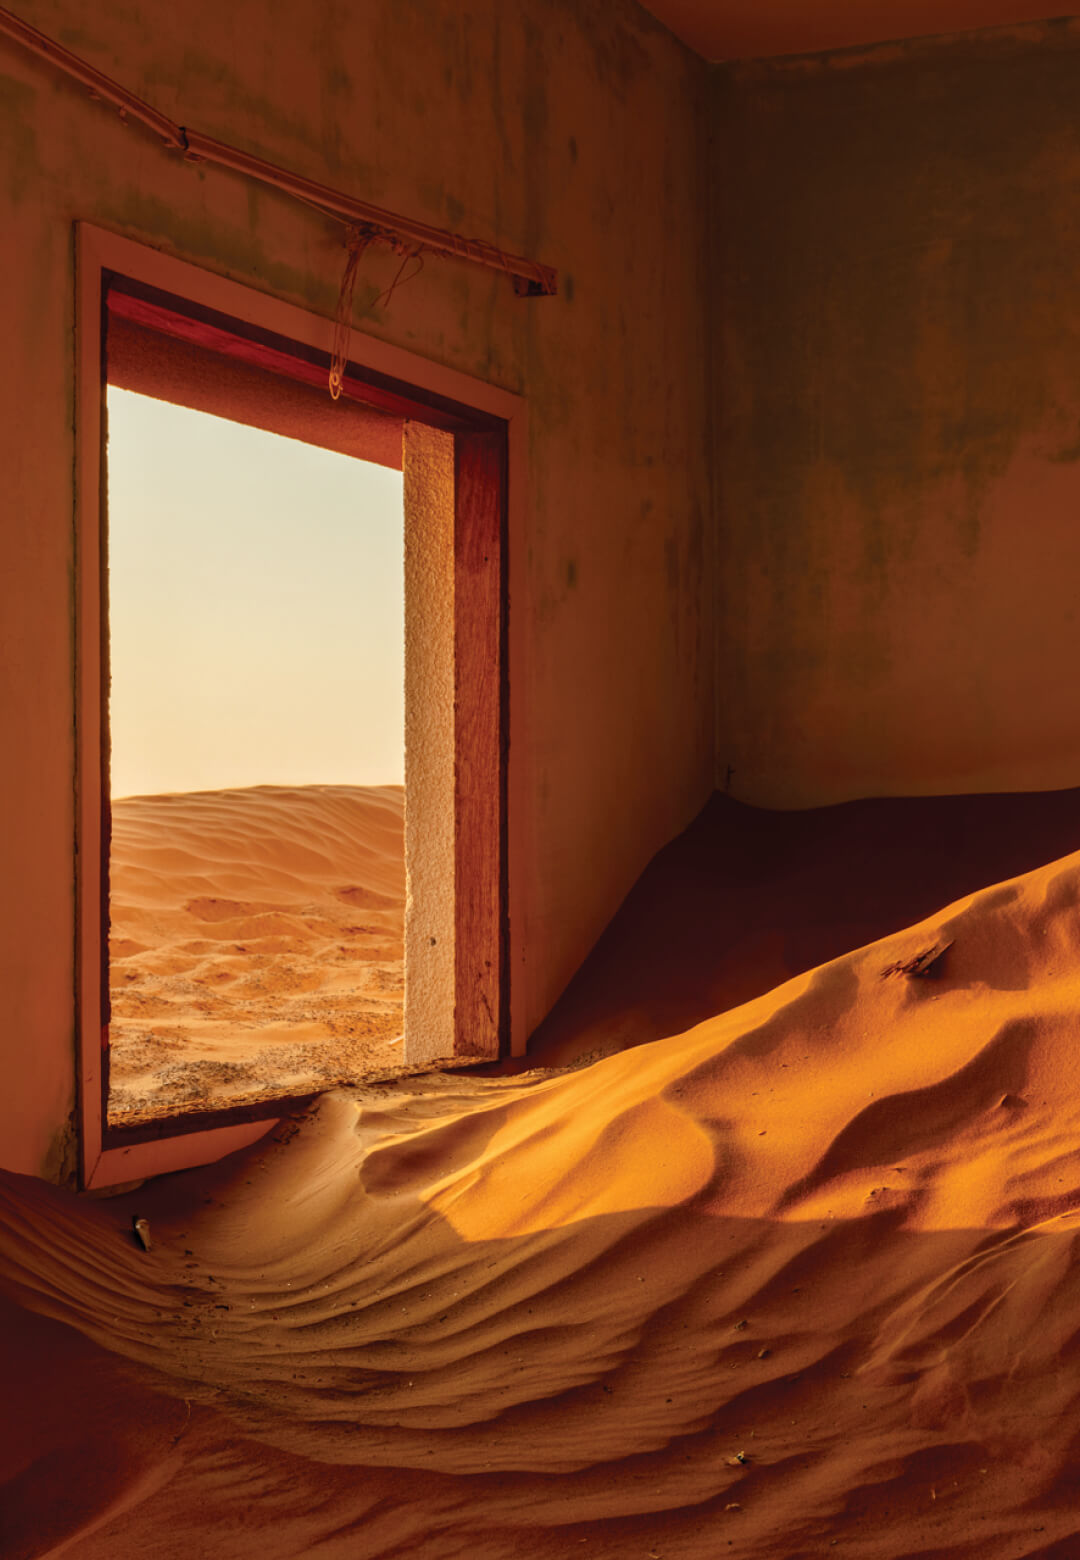 James Kerwin captures the orange glow within Al Madam in UAE for his Uninhabited series | Uninhabited series by James Kerwin | STIRworld